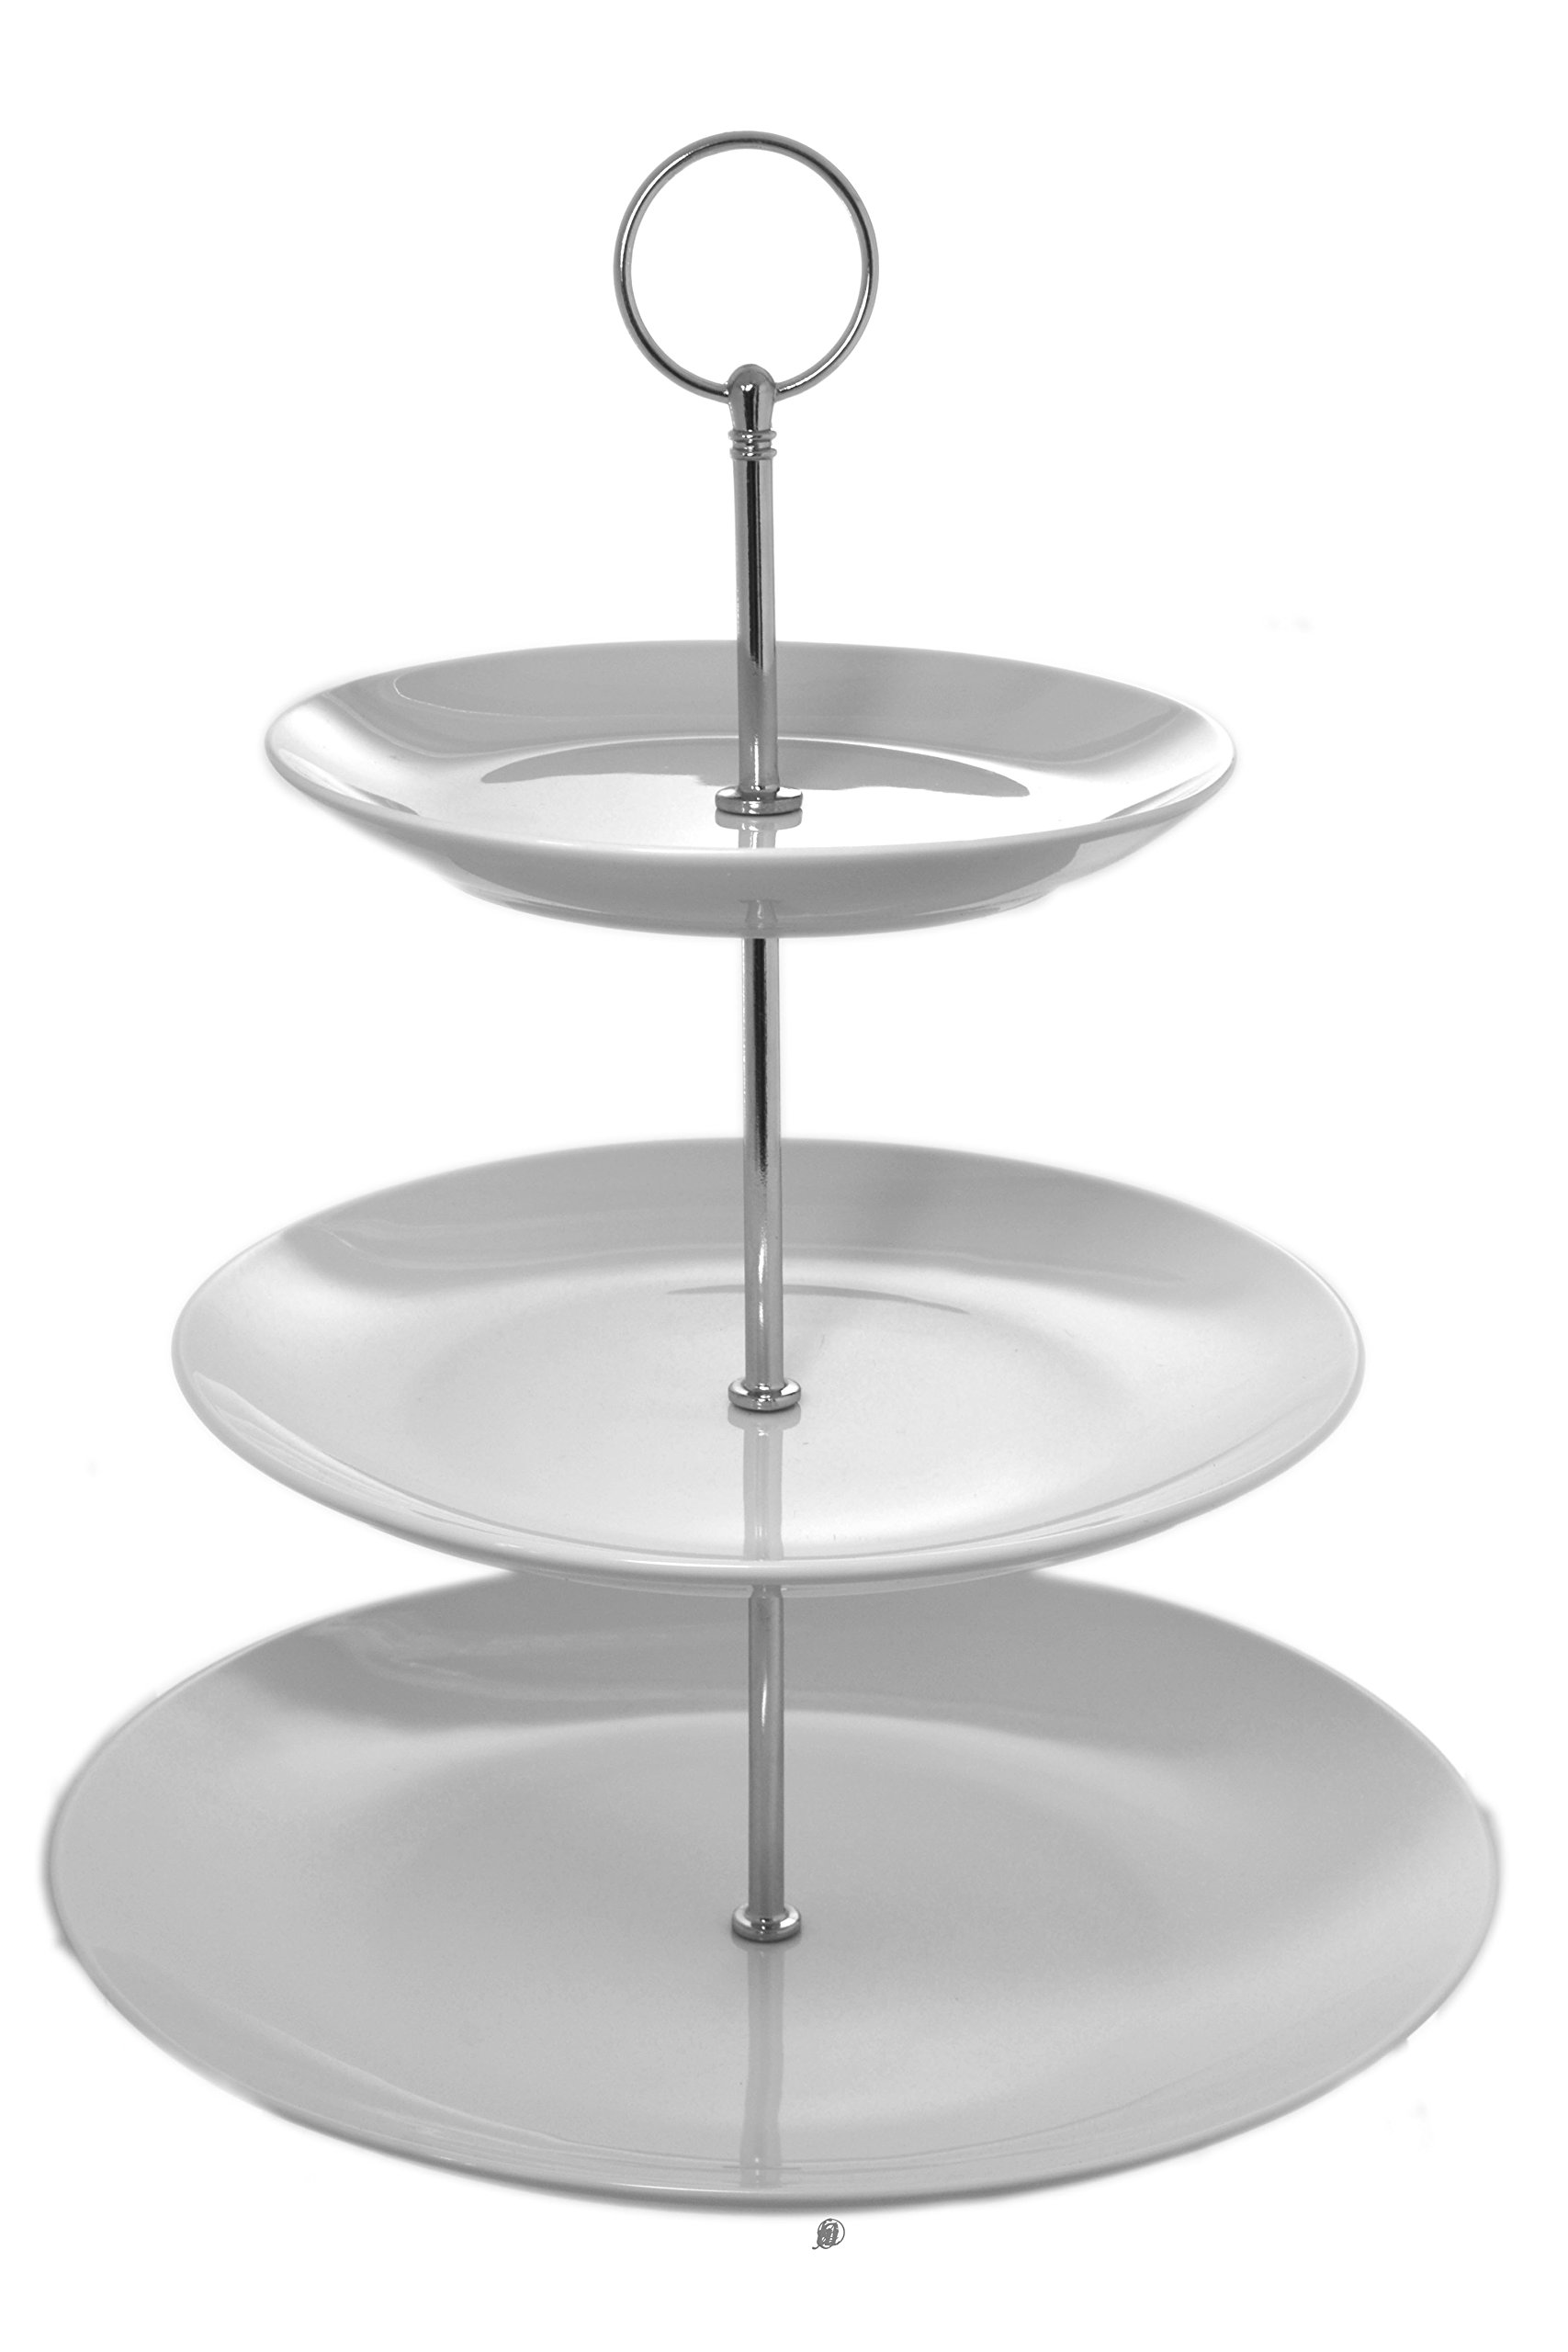 11'' Round 3-Tier Serving Tiered White Porcelain Dessert Plate Pastry Stand